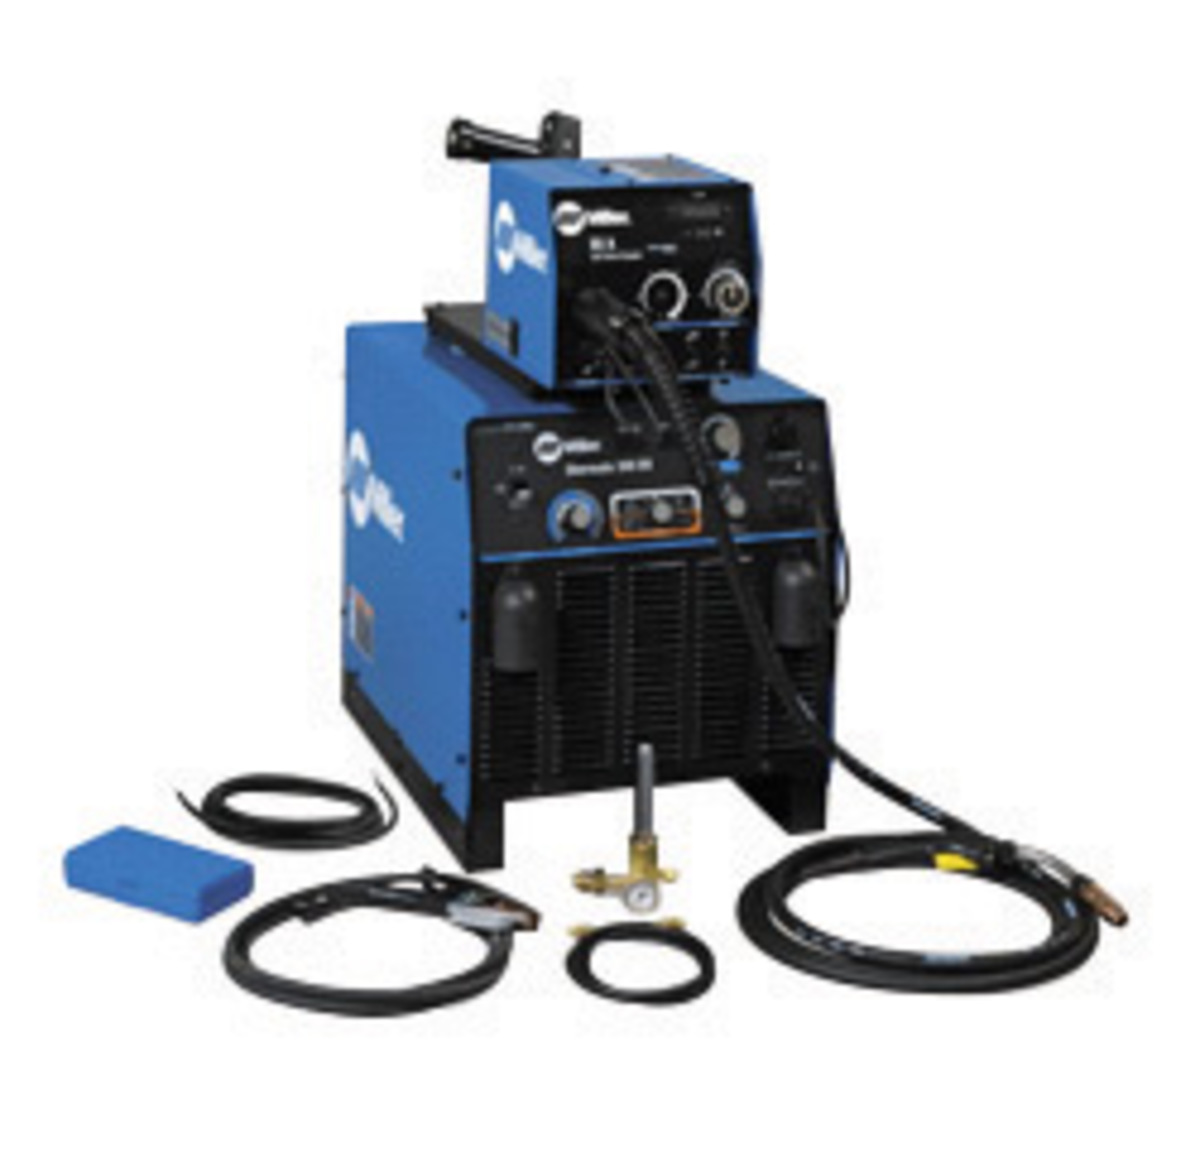 Airgas mil907315 miller shopmate 300 dx cc cv 200 - Webaccess leroymerlin fr ...